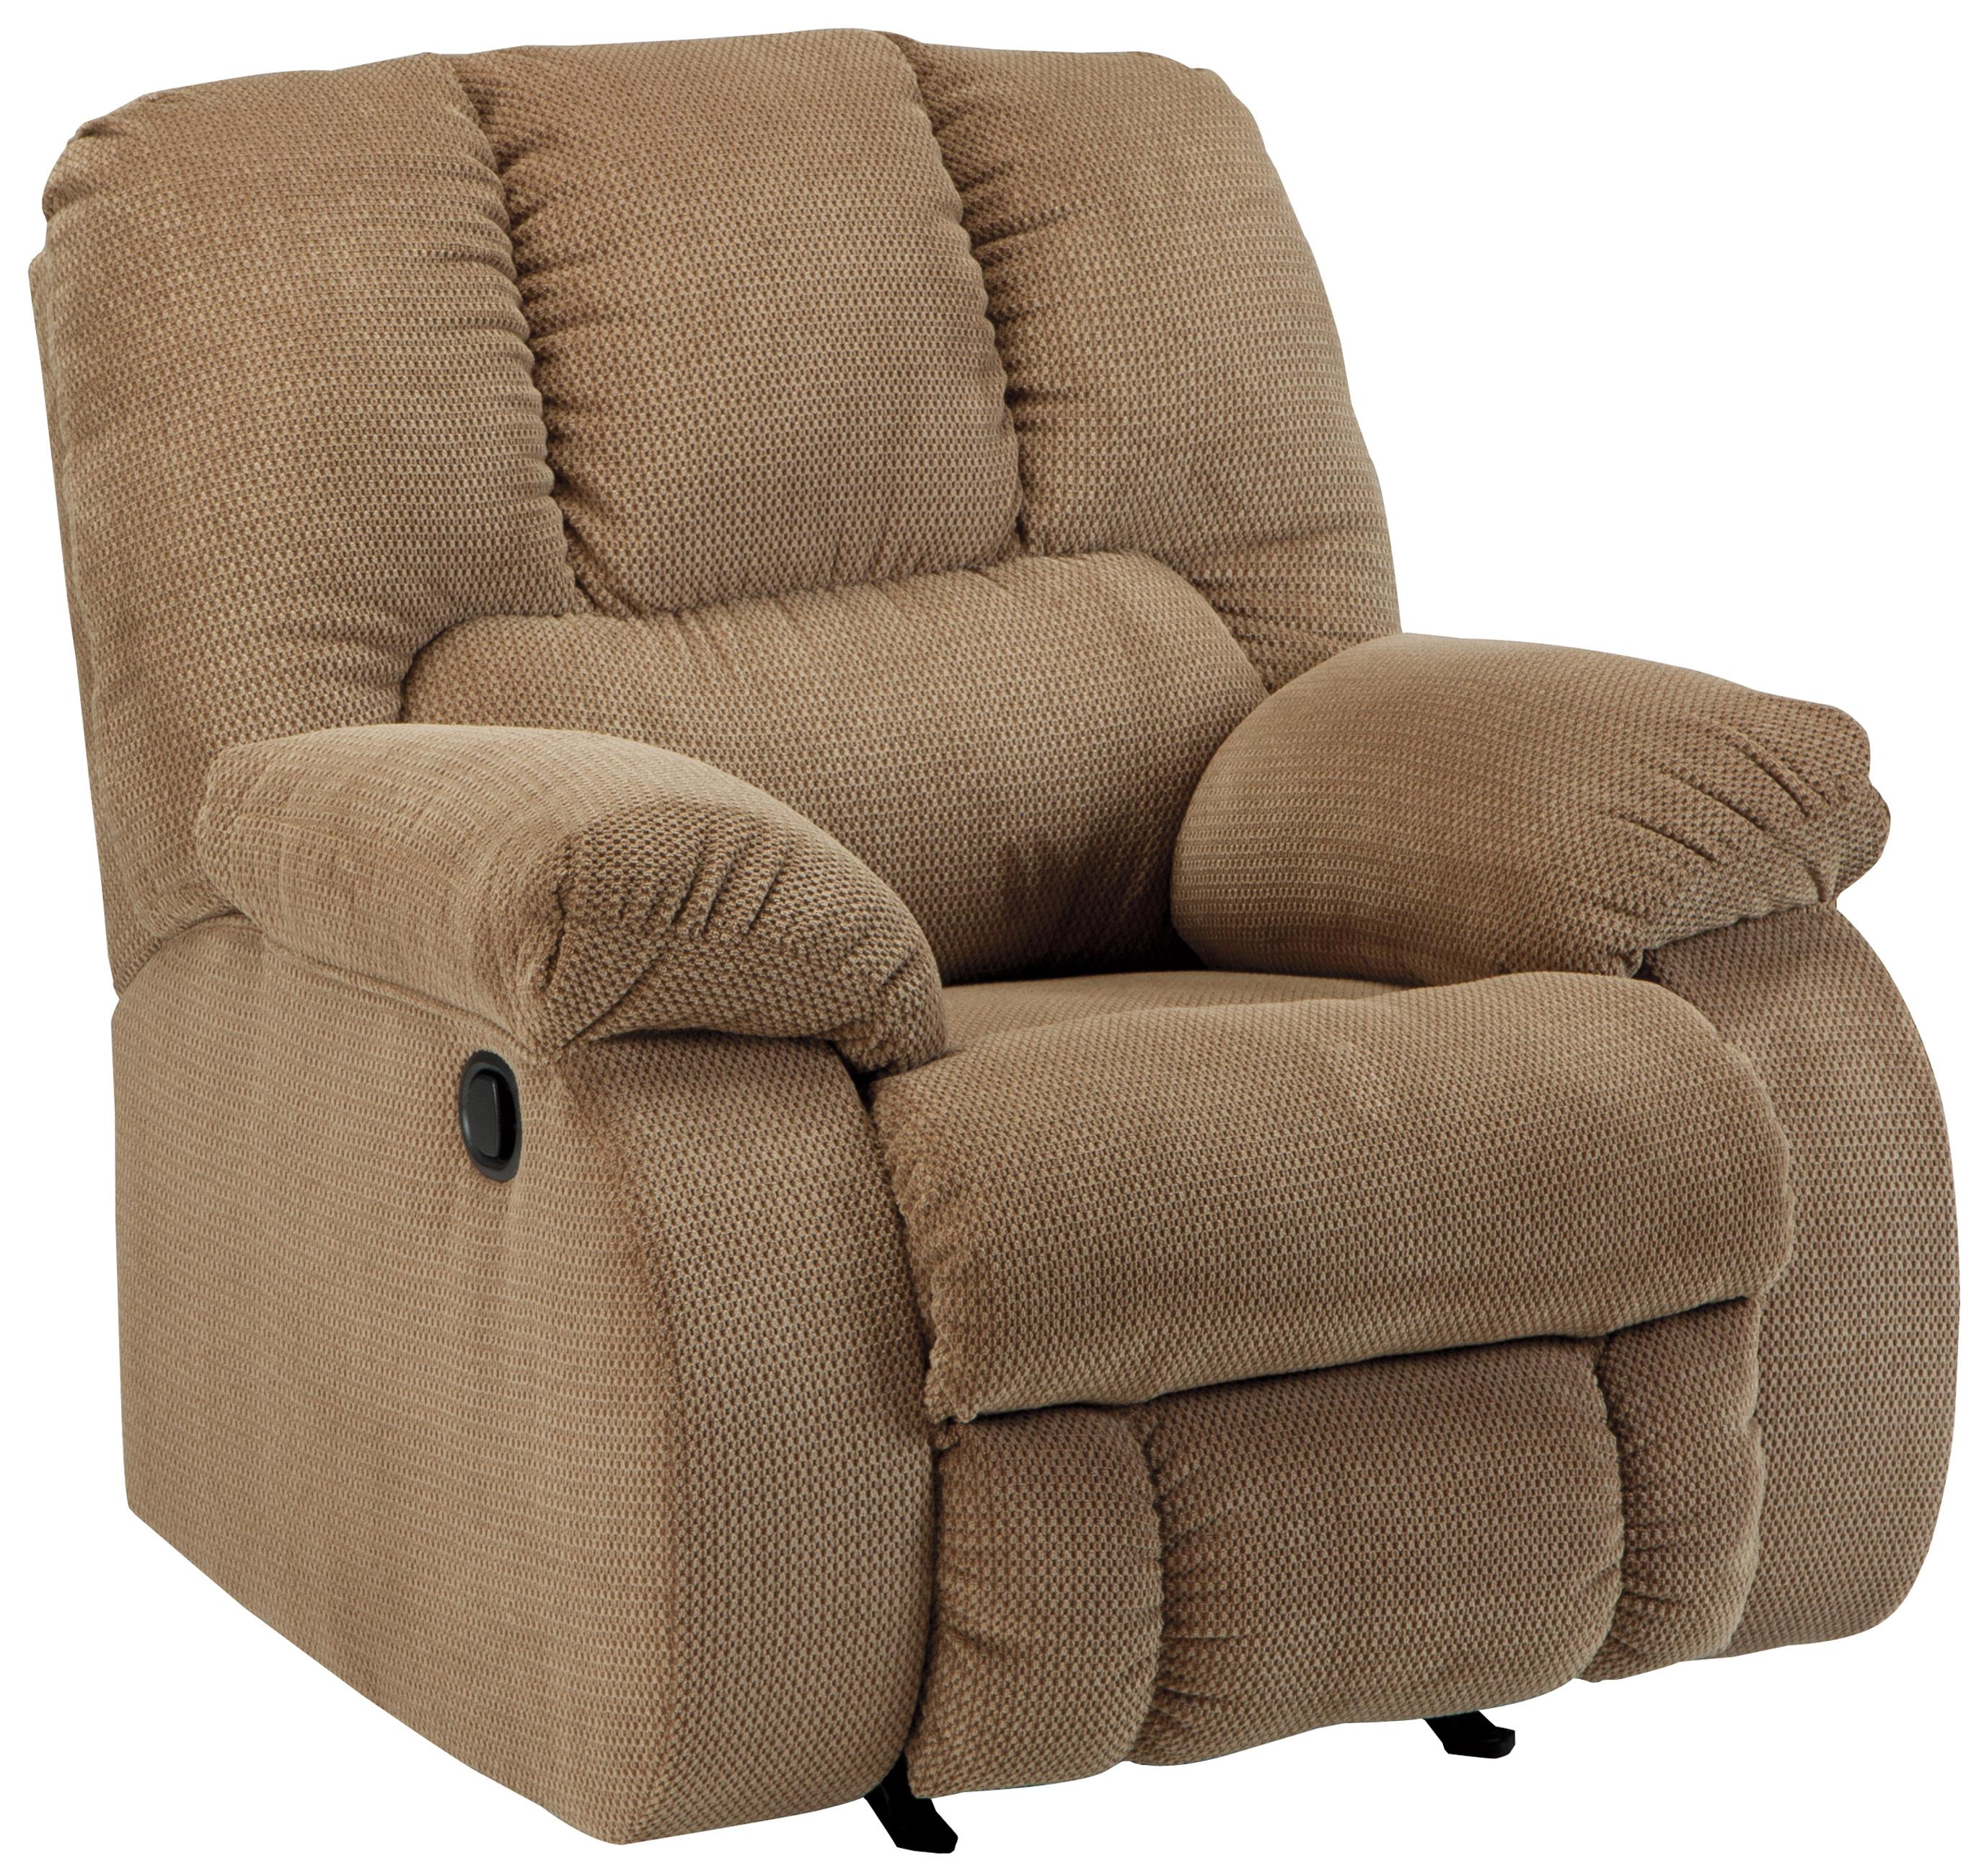 Benchcraft Roan Rocker Recliner - Item Number: 3860225